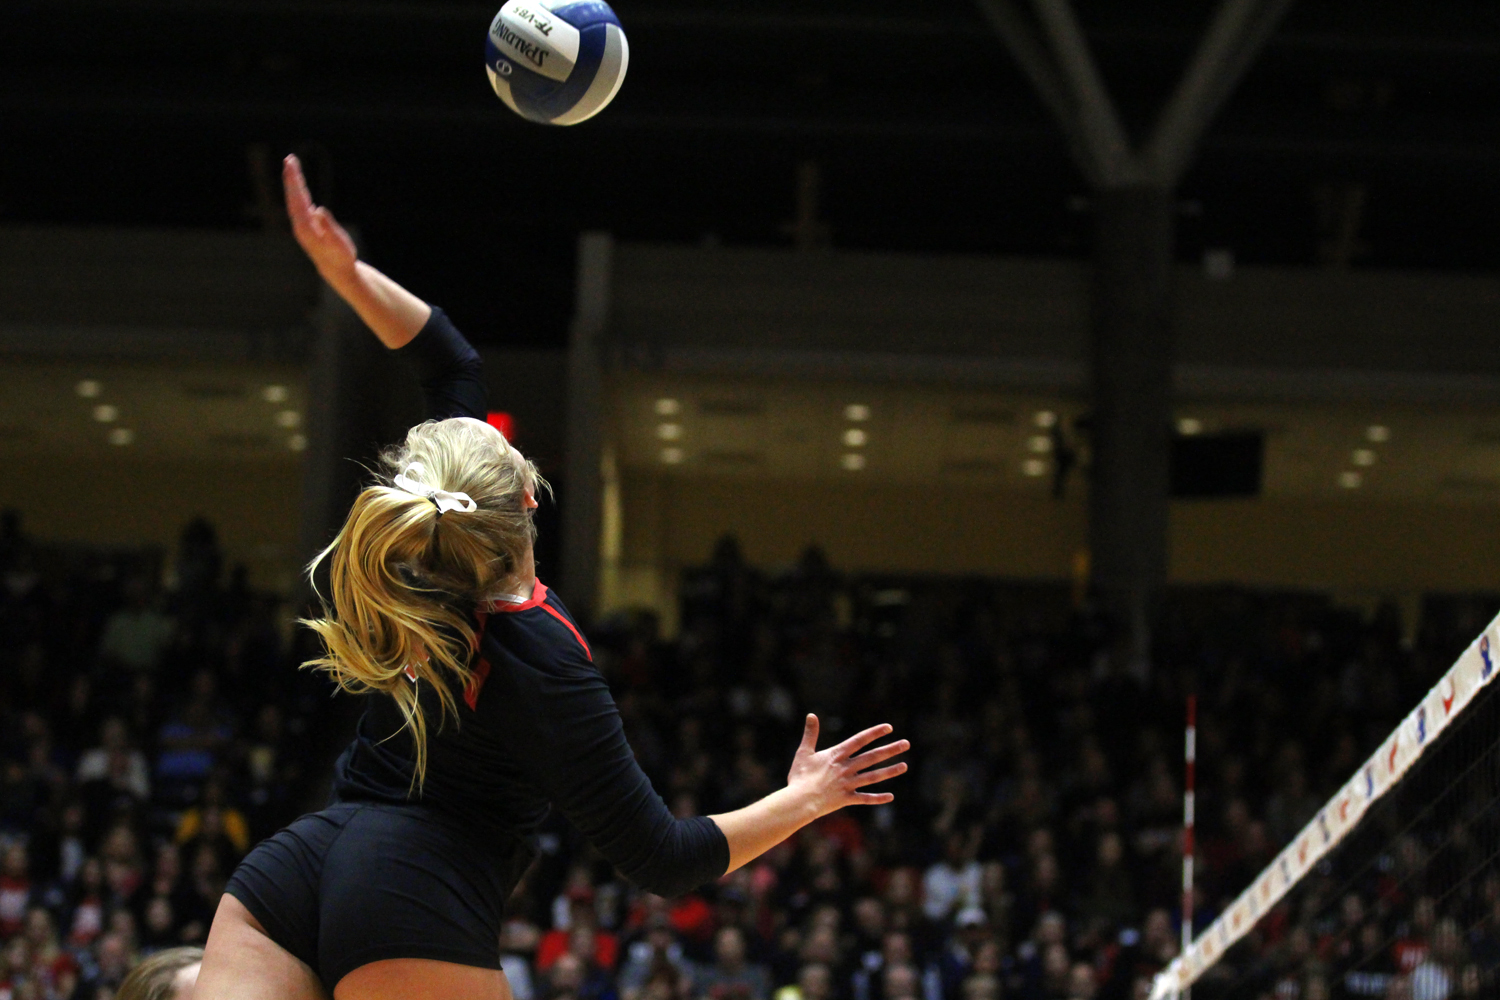 Freshman+Brinkley+Barker+looks+to+hit+the+ball+from+the+right+side+hitter+position.